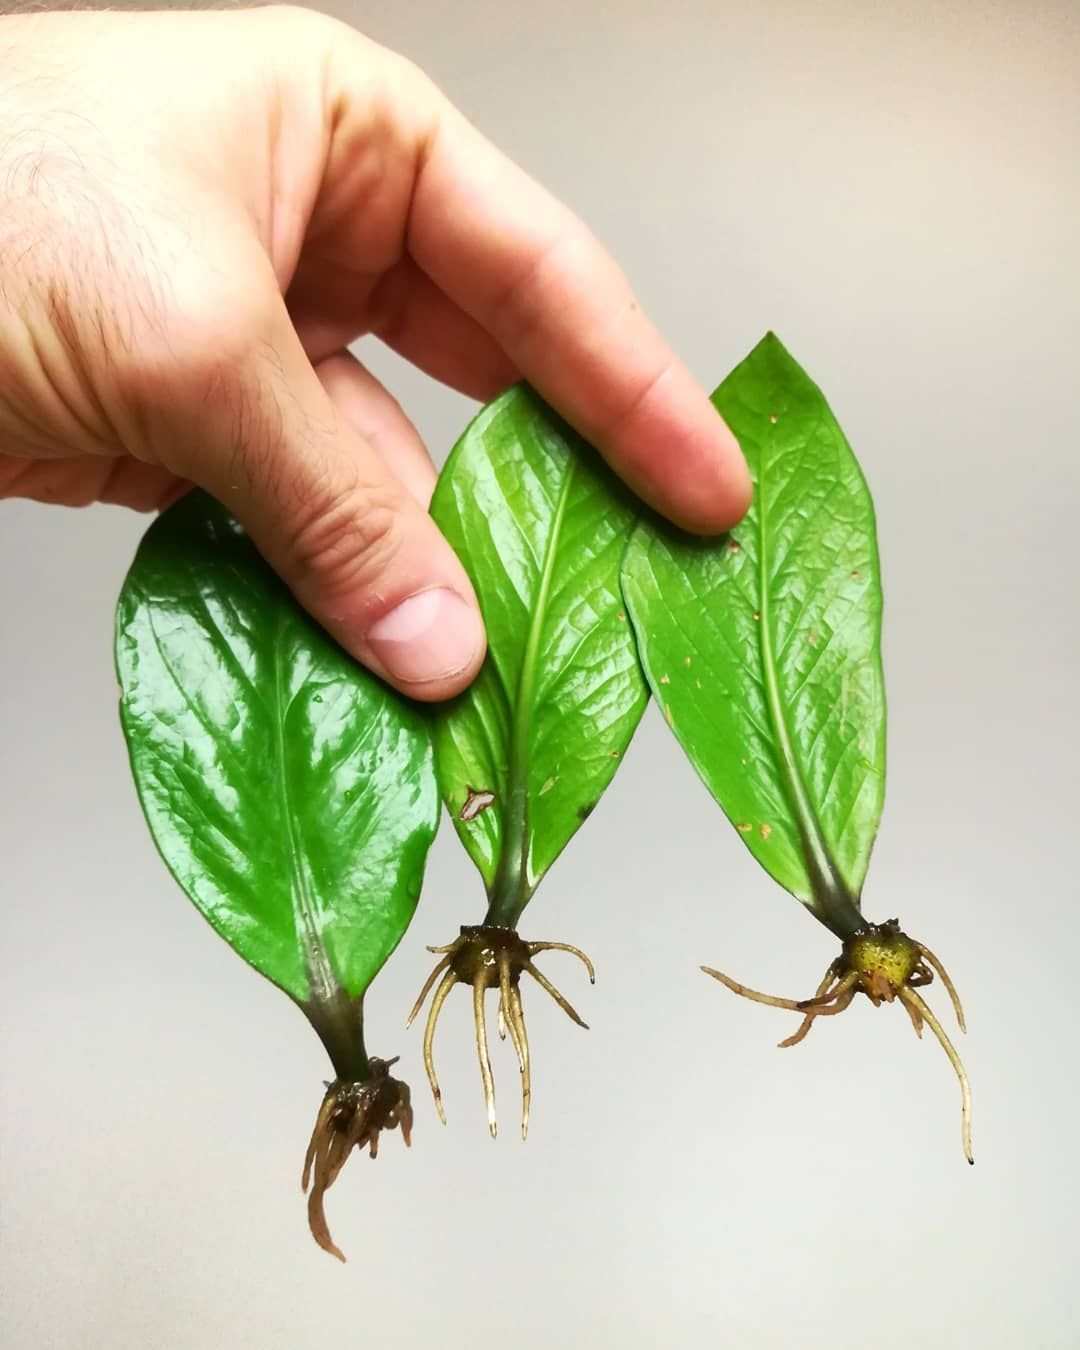 Best 12 Propagating A Zz Plant Rooting Stem Cuttings In Water 5 Steps Skillofking Com Zz Plant Care Plant Care Plants